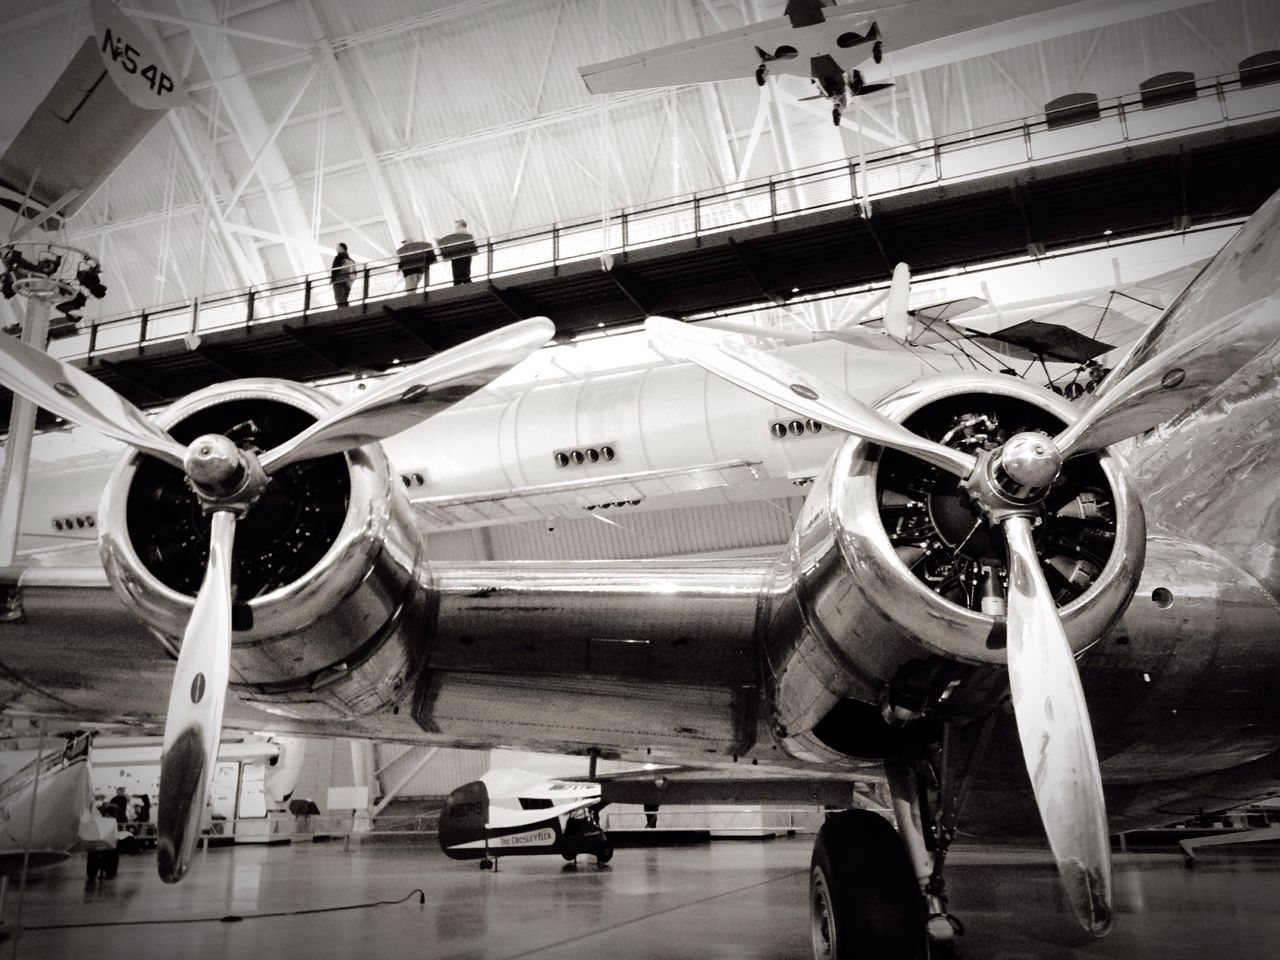 The Clipper Flying Cloud Boeing 307 Stratoliner Smithsonian Air And Space Museum Washington, D. C. Monochrome Photography Museum Famous Place Tourism Travel Destinations Transportation Travel History Follow4follow Close-upMetalliceller] metallAbstractaStill LifeiBlackandwhiteiFollowmewTaking PhotostSeeing The Sightshts Day No People